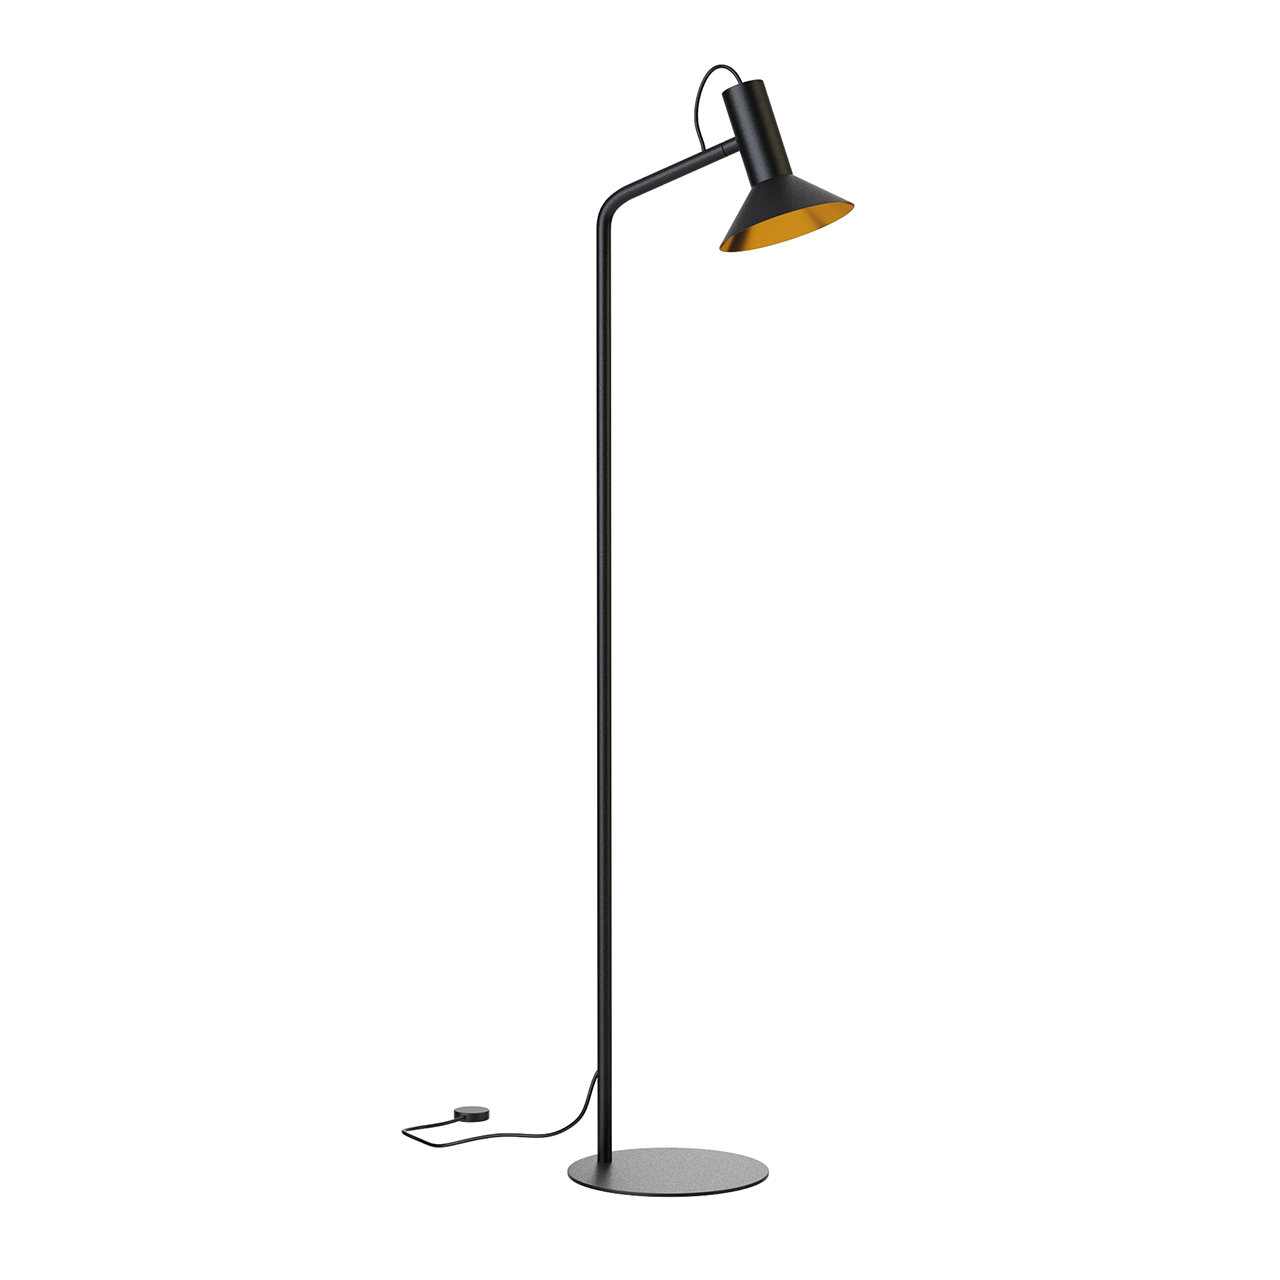 Roomor 1 Floor Lamp 638120BK1 by Wever Ducre